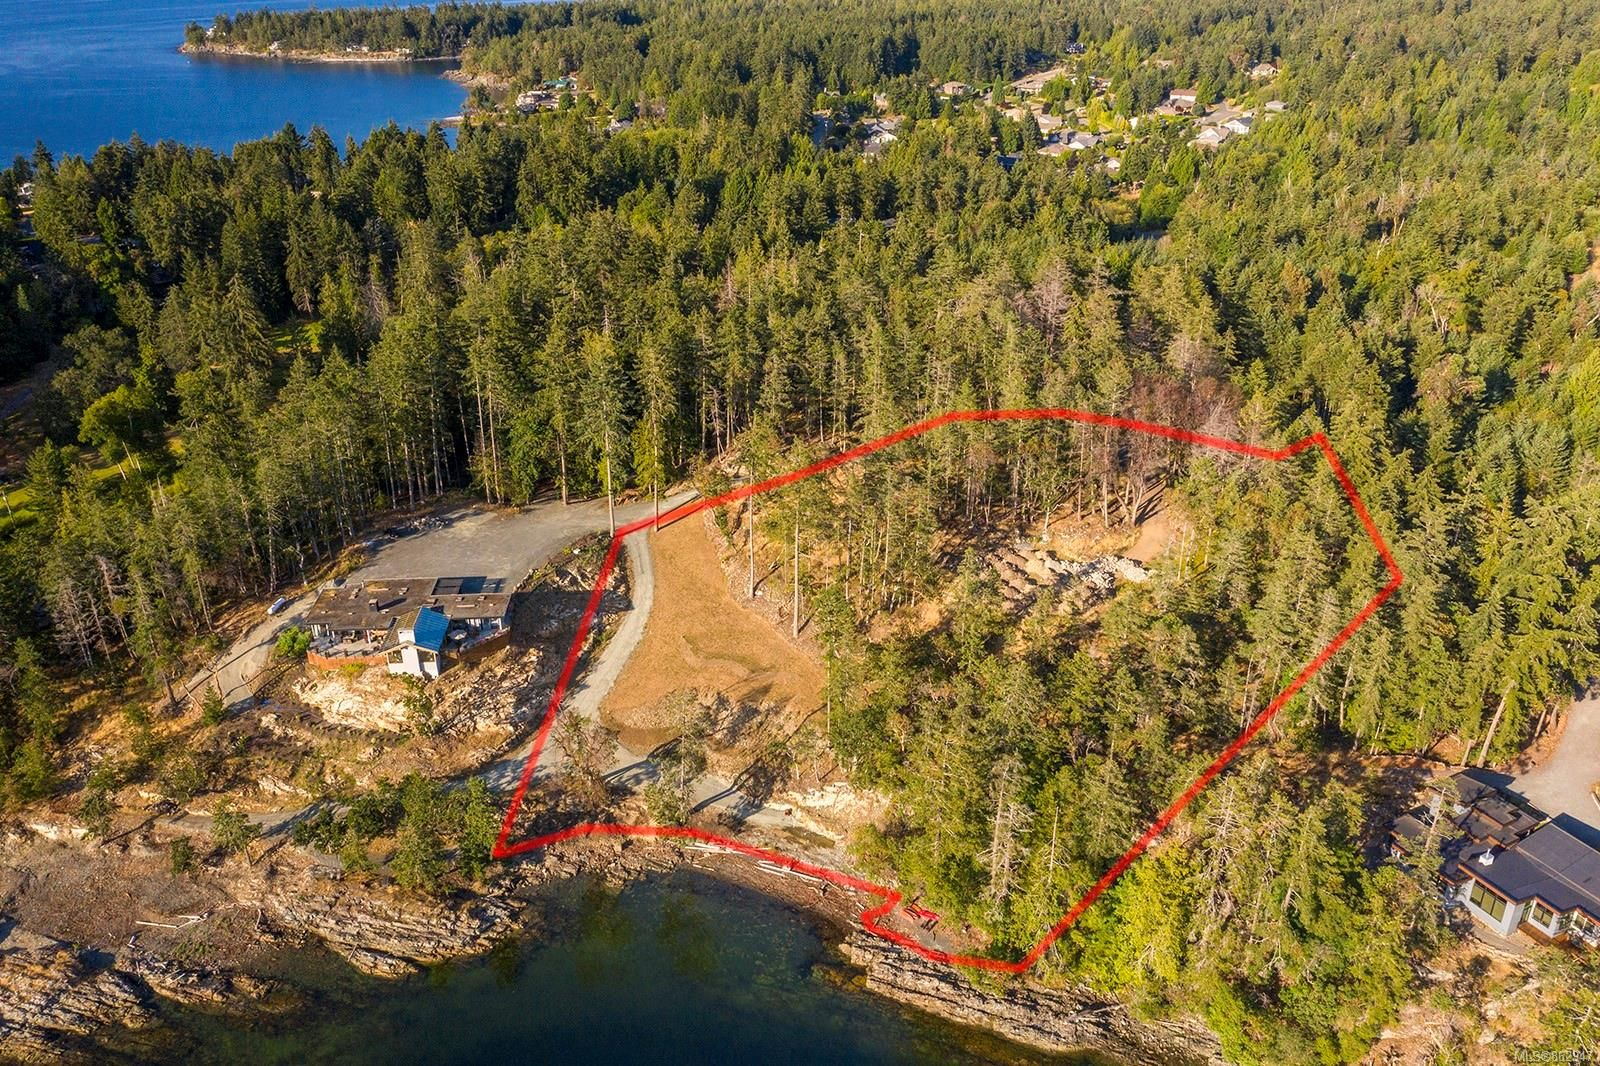 Main Photo: LT B 1675 Claudet Rd in : PQ Nanoose Land for sale (Parksville/Qualicum)  : MLS®# 862947